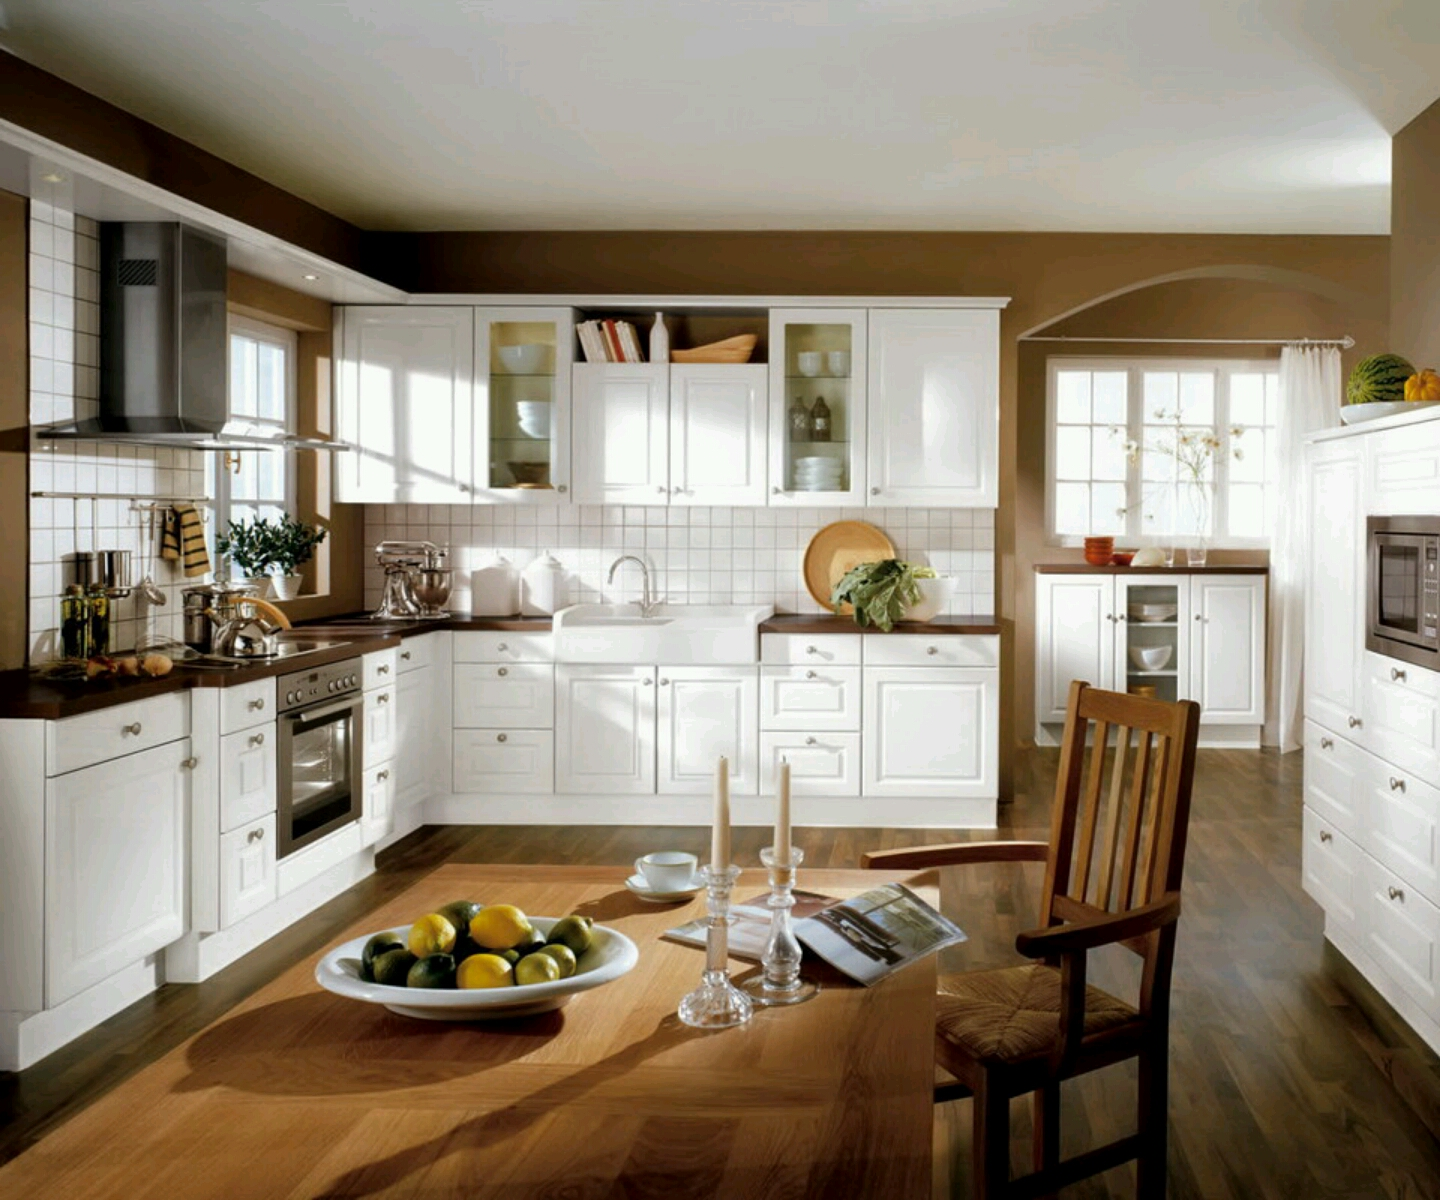 20 modern kitchen design ideas for 2012 pictures long for New style kitchen cabinets